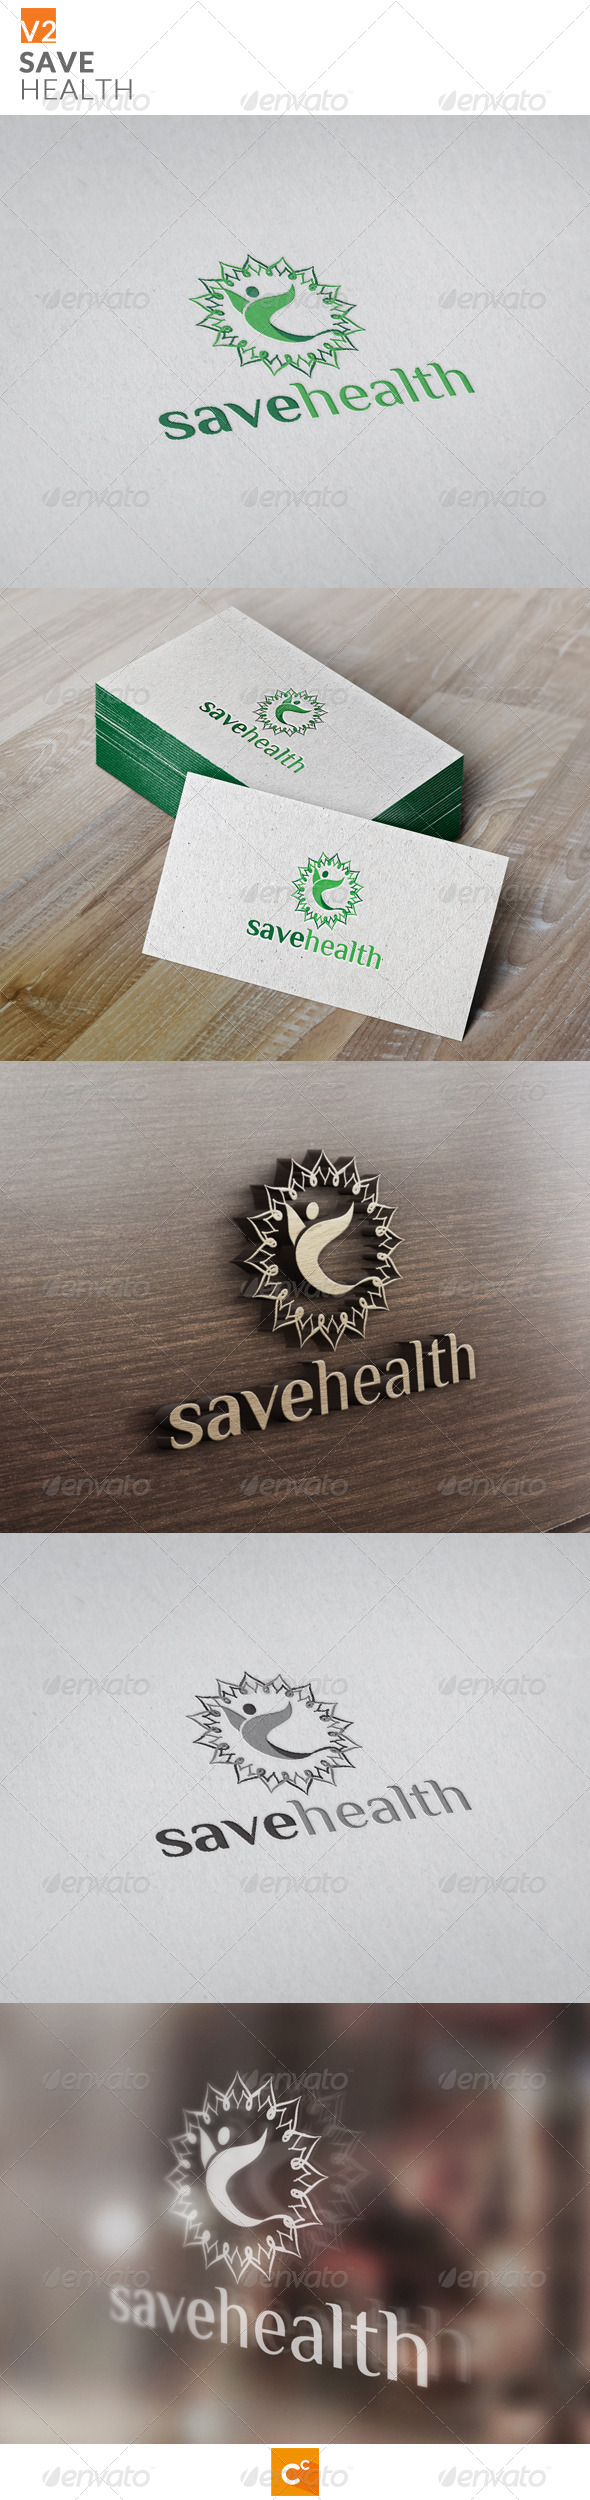 GraphicRiver Save Health v2 8485806